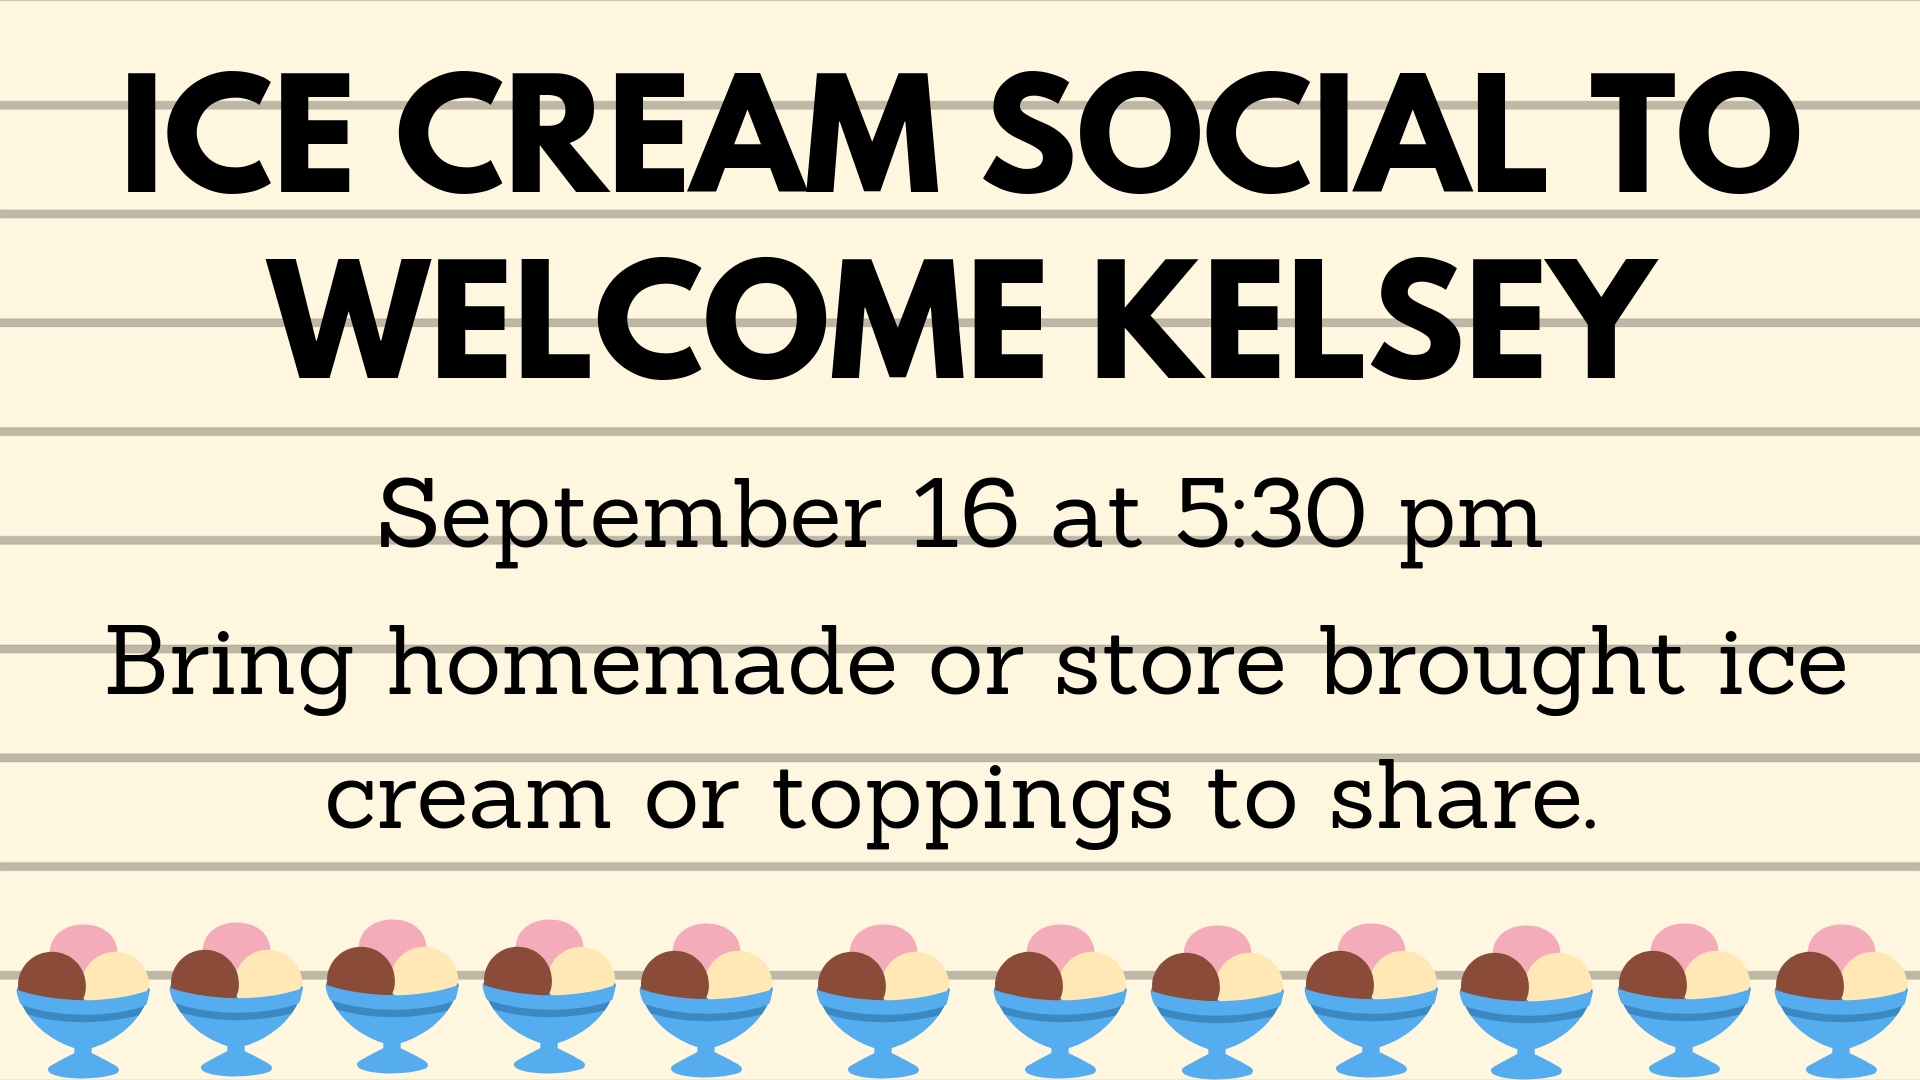 - The ice cream social has been rescheduled for Sunday, September 23.